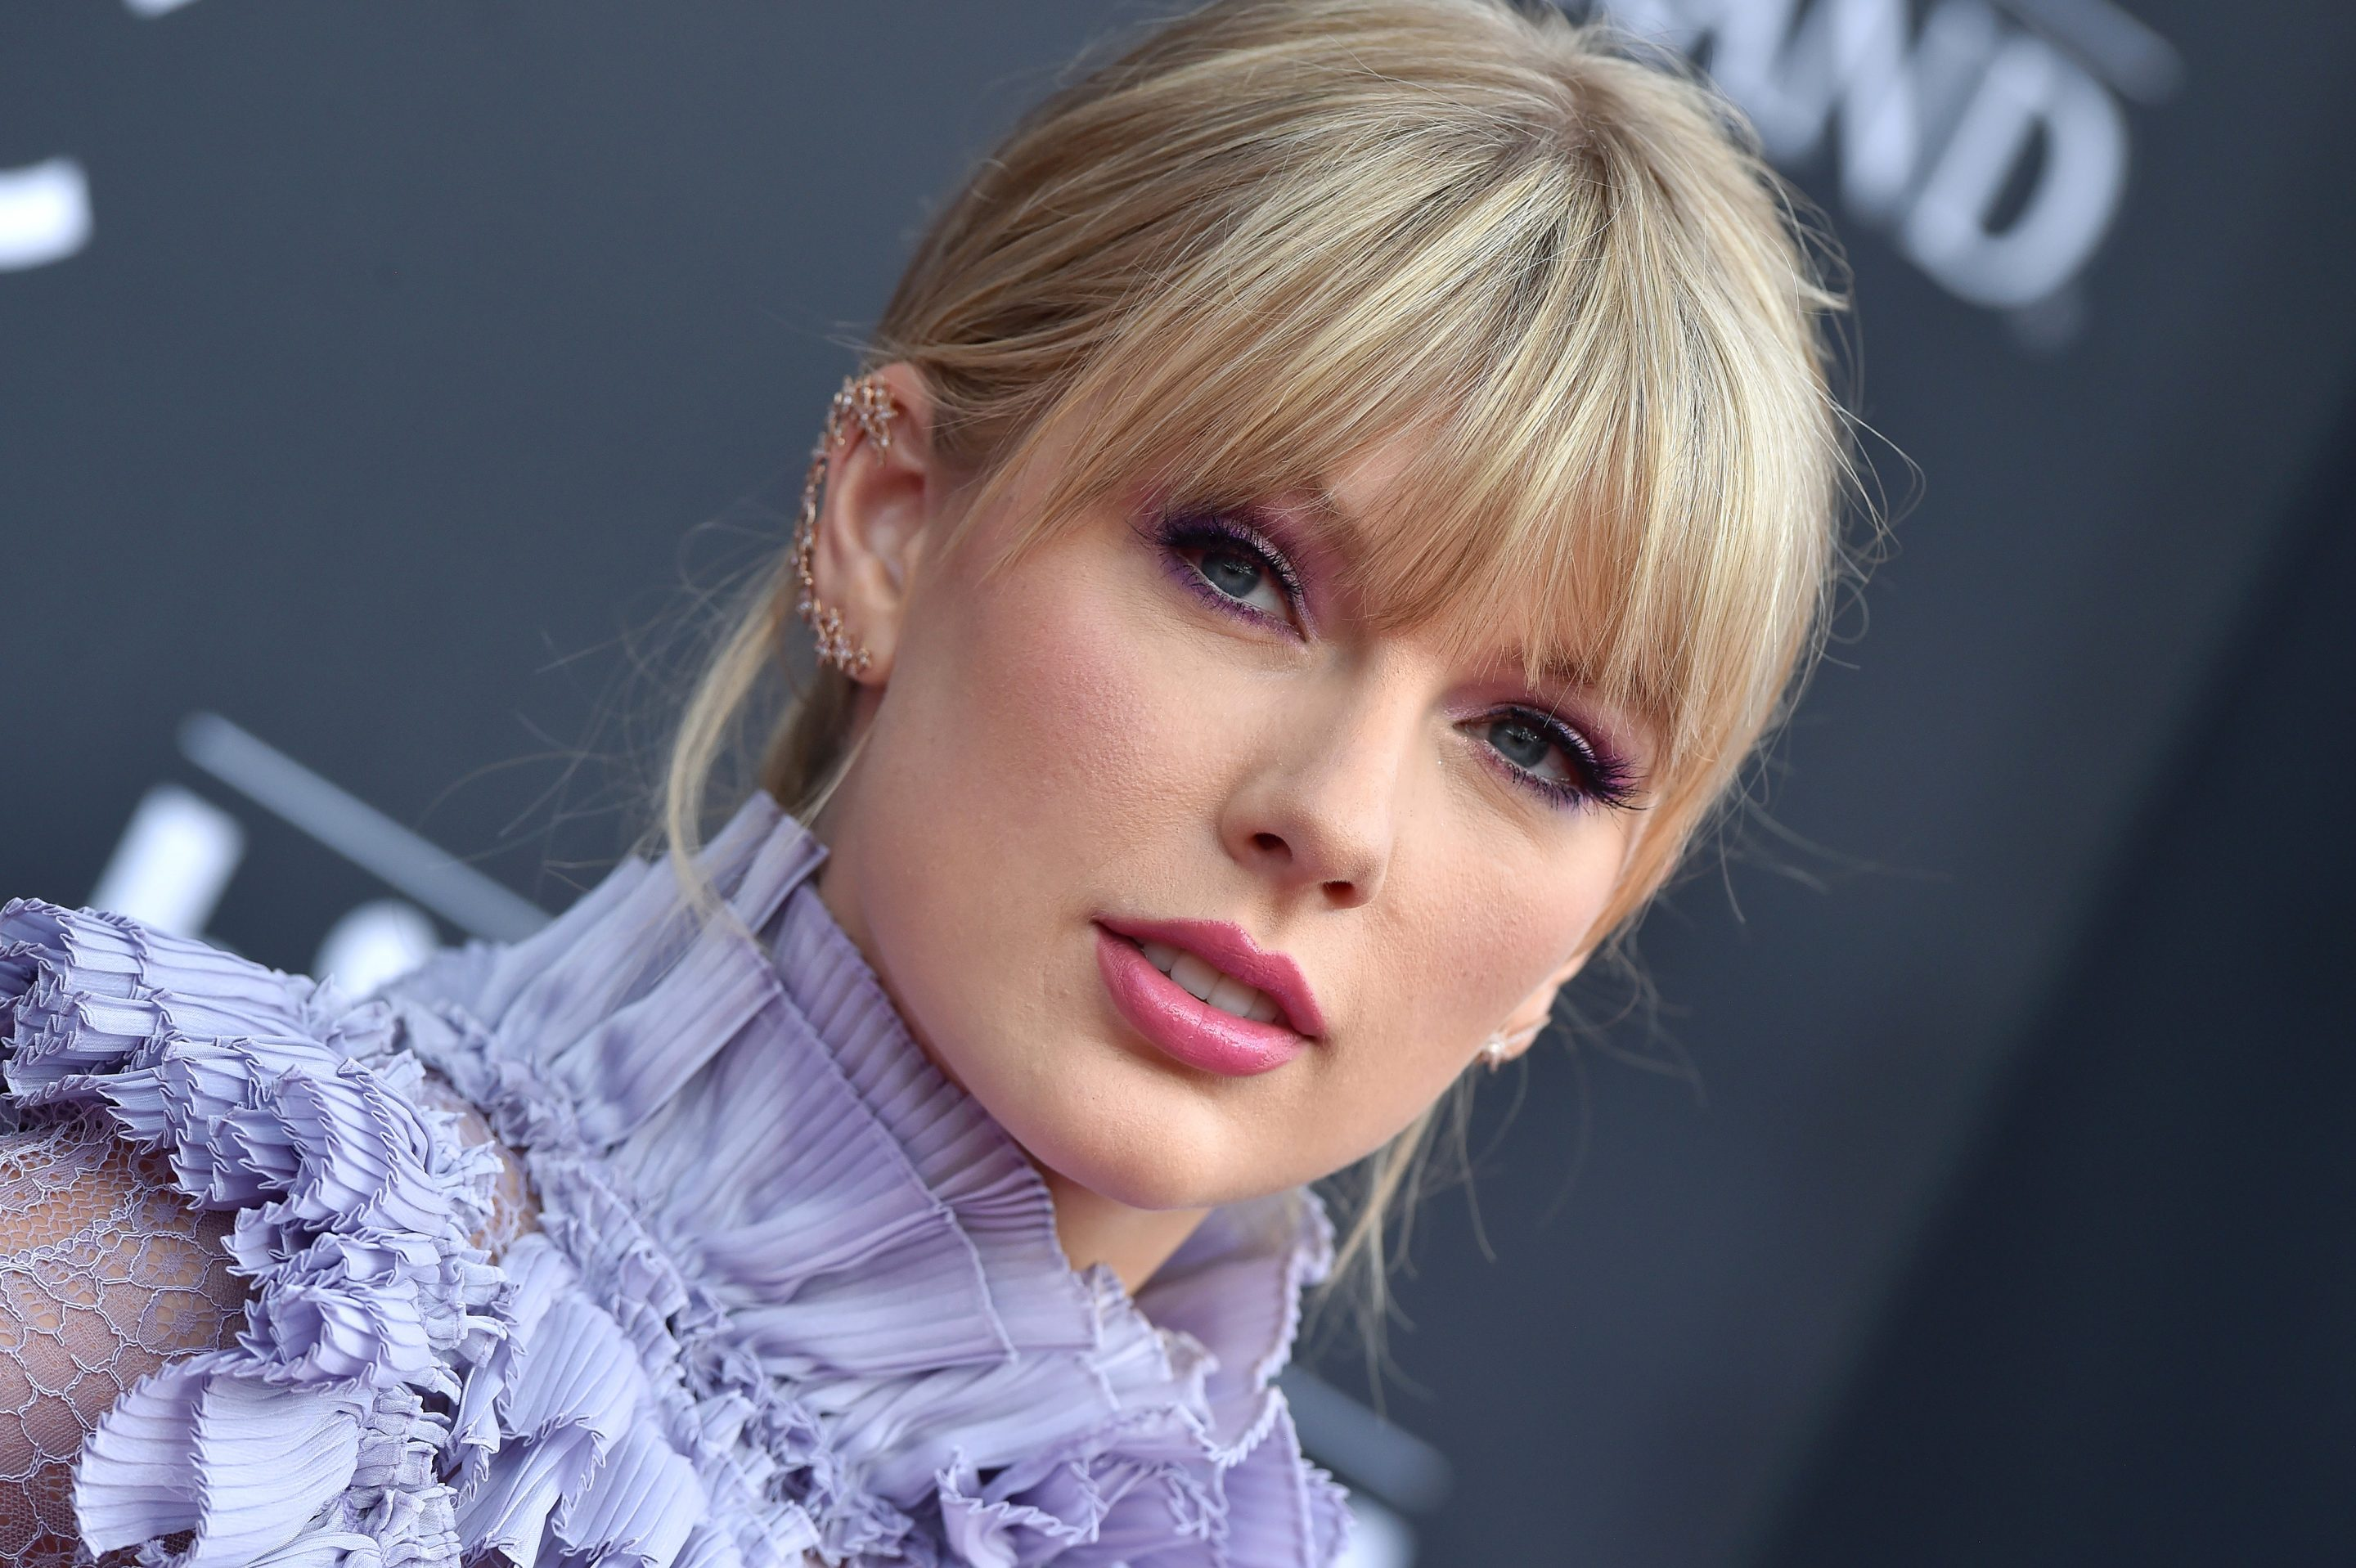 Why Taylor Swift Is 'Grossed Out' by Scooter Braun Holding Rights to